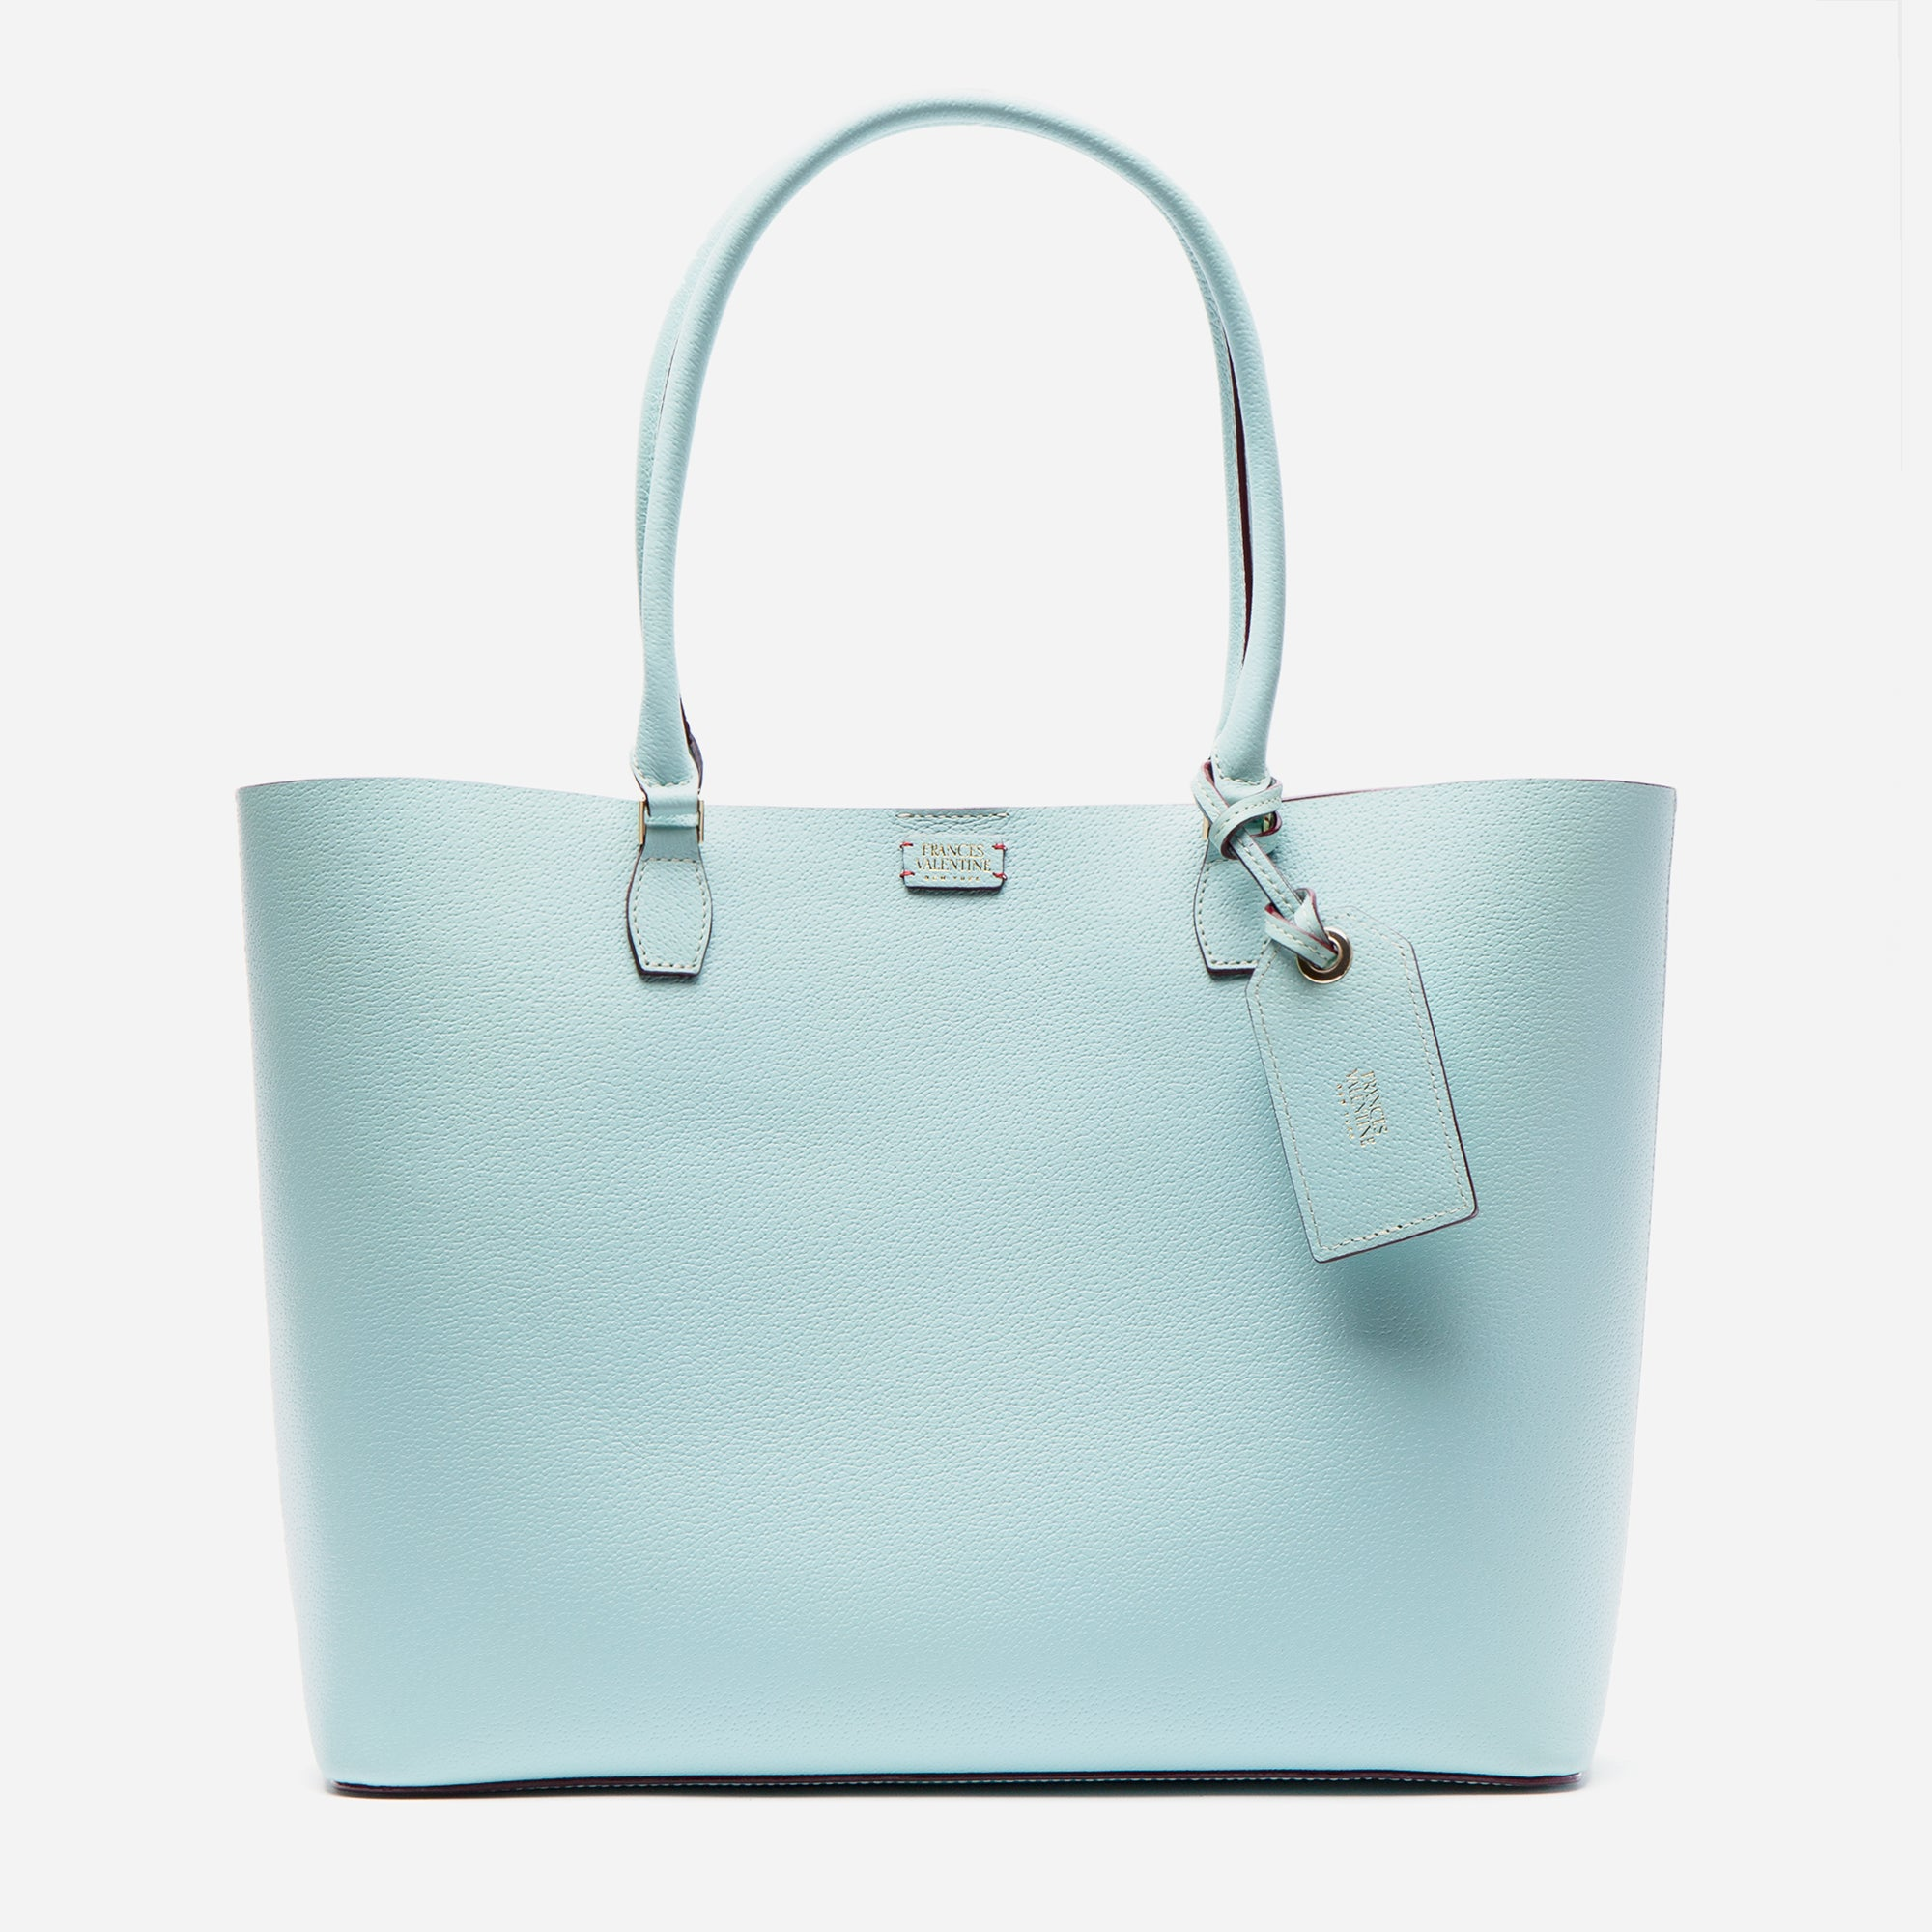 Trixie Tote Boarskin Light Blue - Frances Valentine